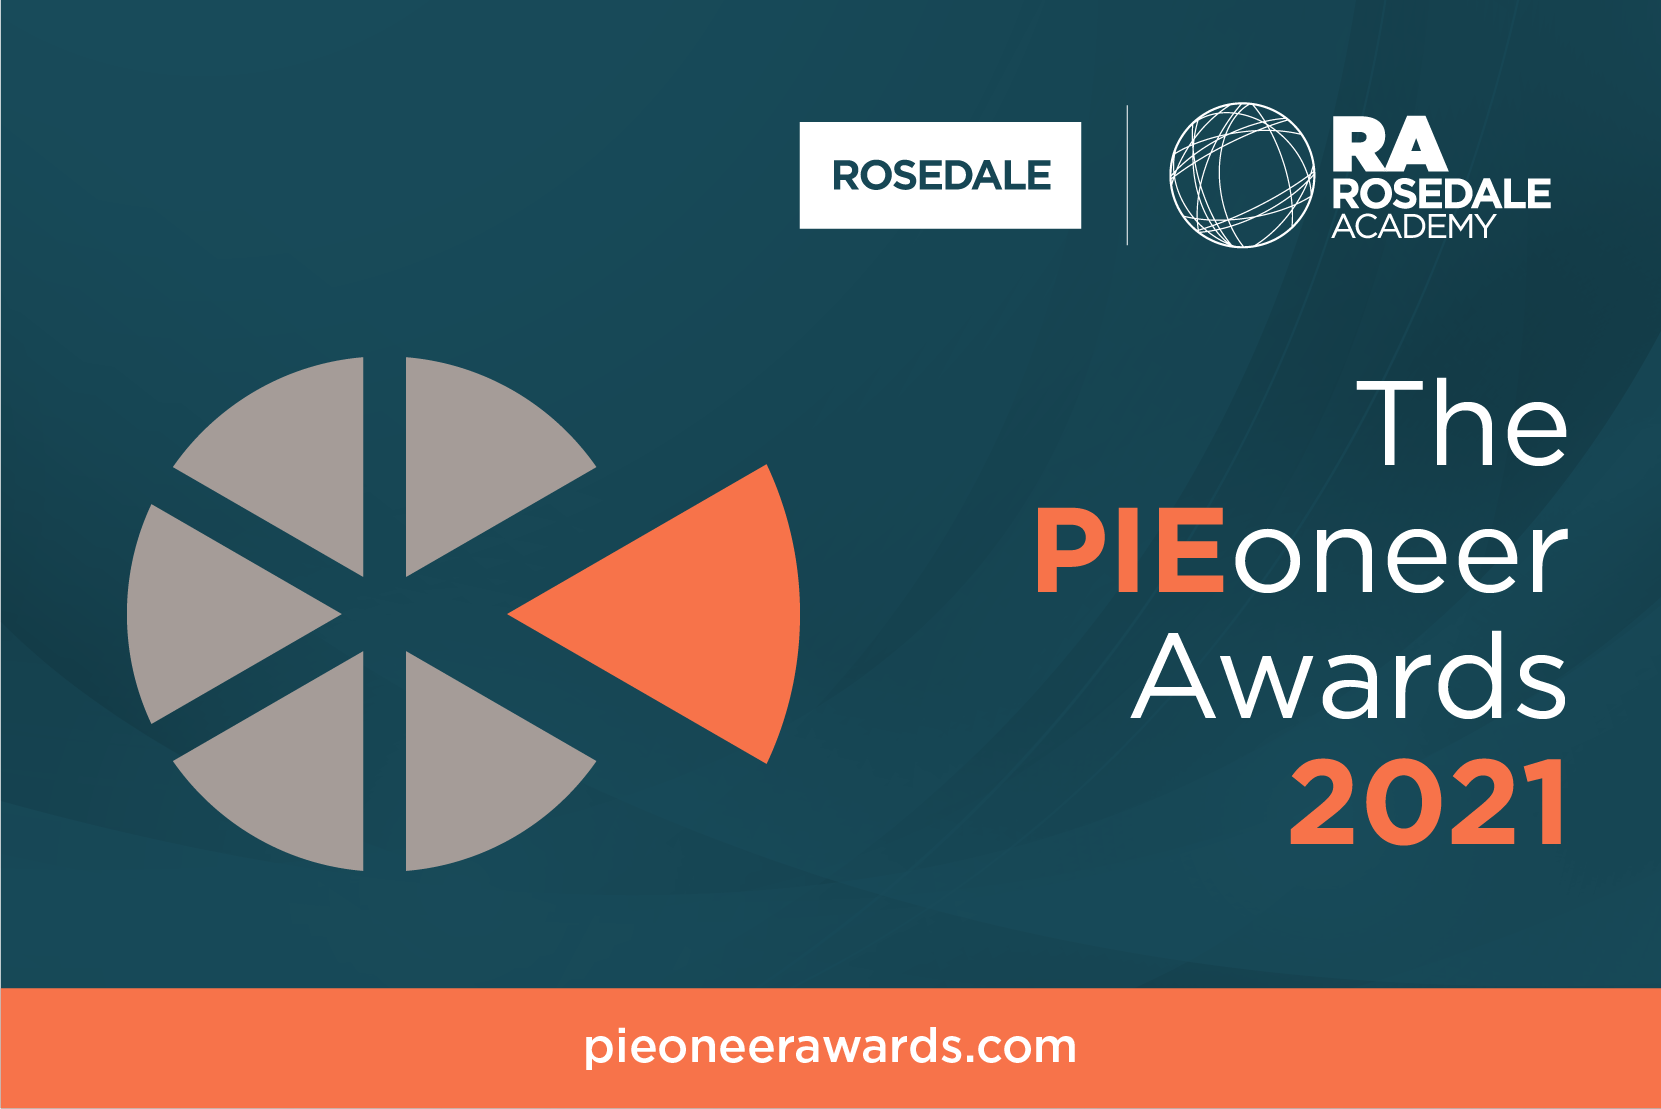 Rosedale named Highly Commended in Secondary Learning International Impact Award at the 2021 PIEoneer Awards